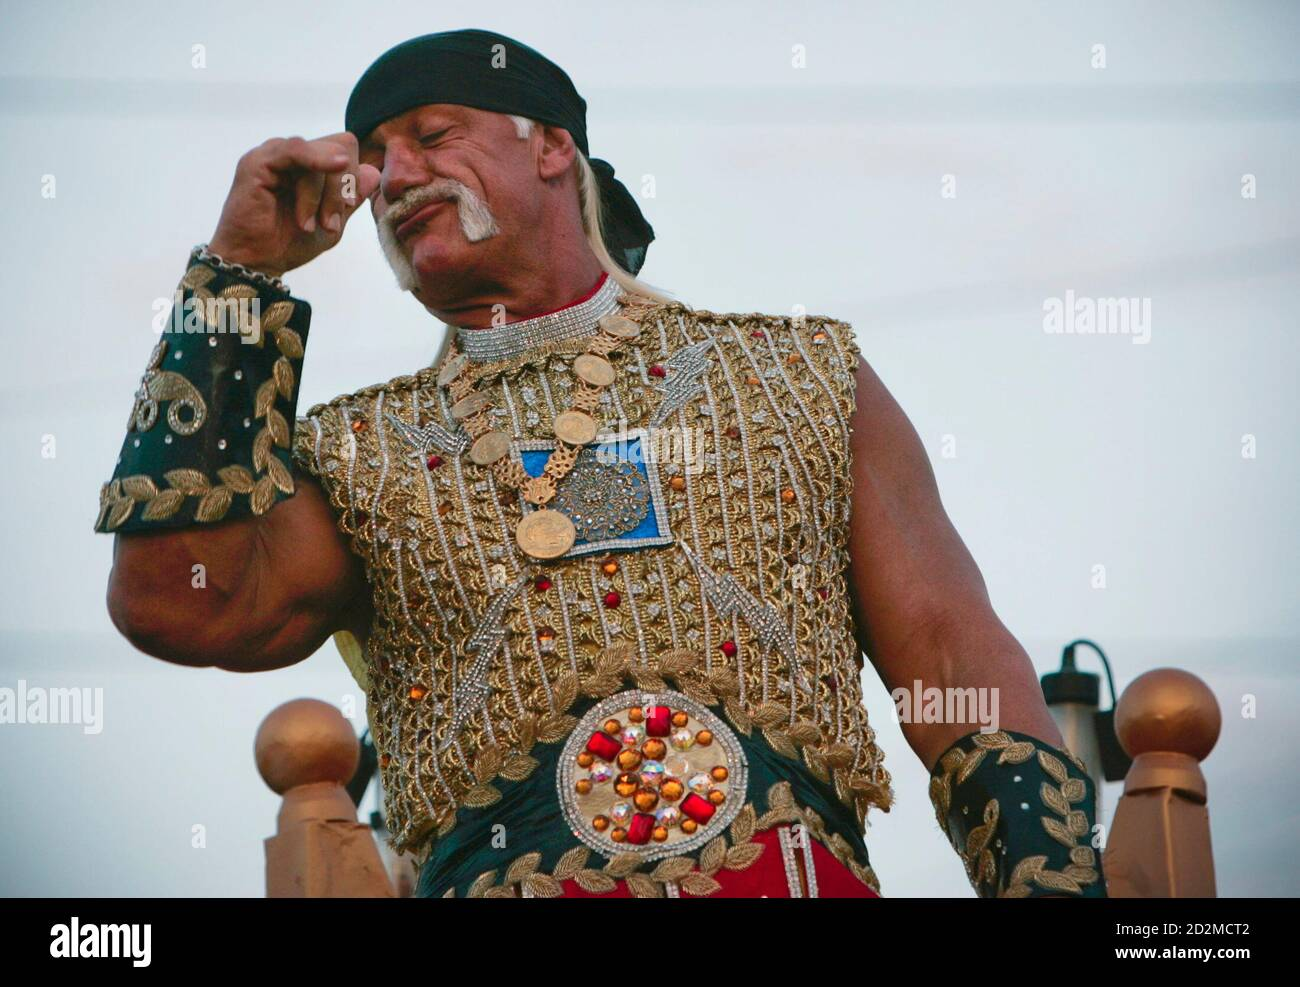 Grand Marshall, professional wrestler and actor, Hulk Hogan flexes his arm during the Bacchus Mardi Gras parade in New Orleans, Louisiana February 3, 2008. REUTERS/Lee Celano (UNITED STATES) Stock Photo